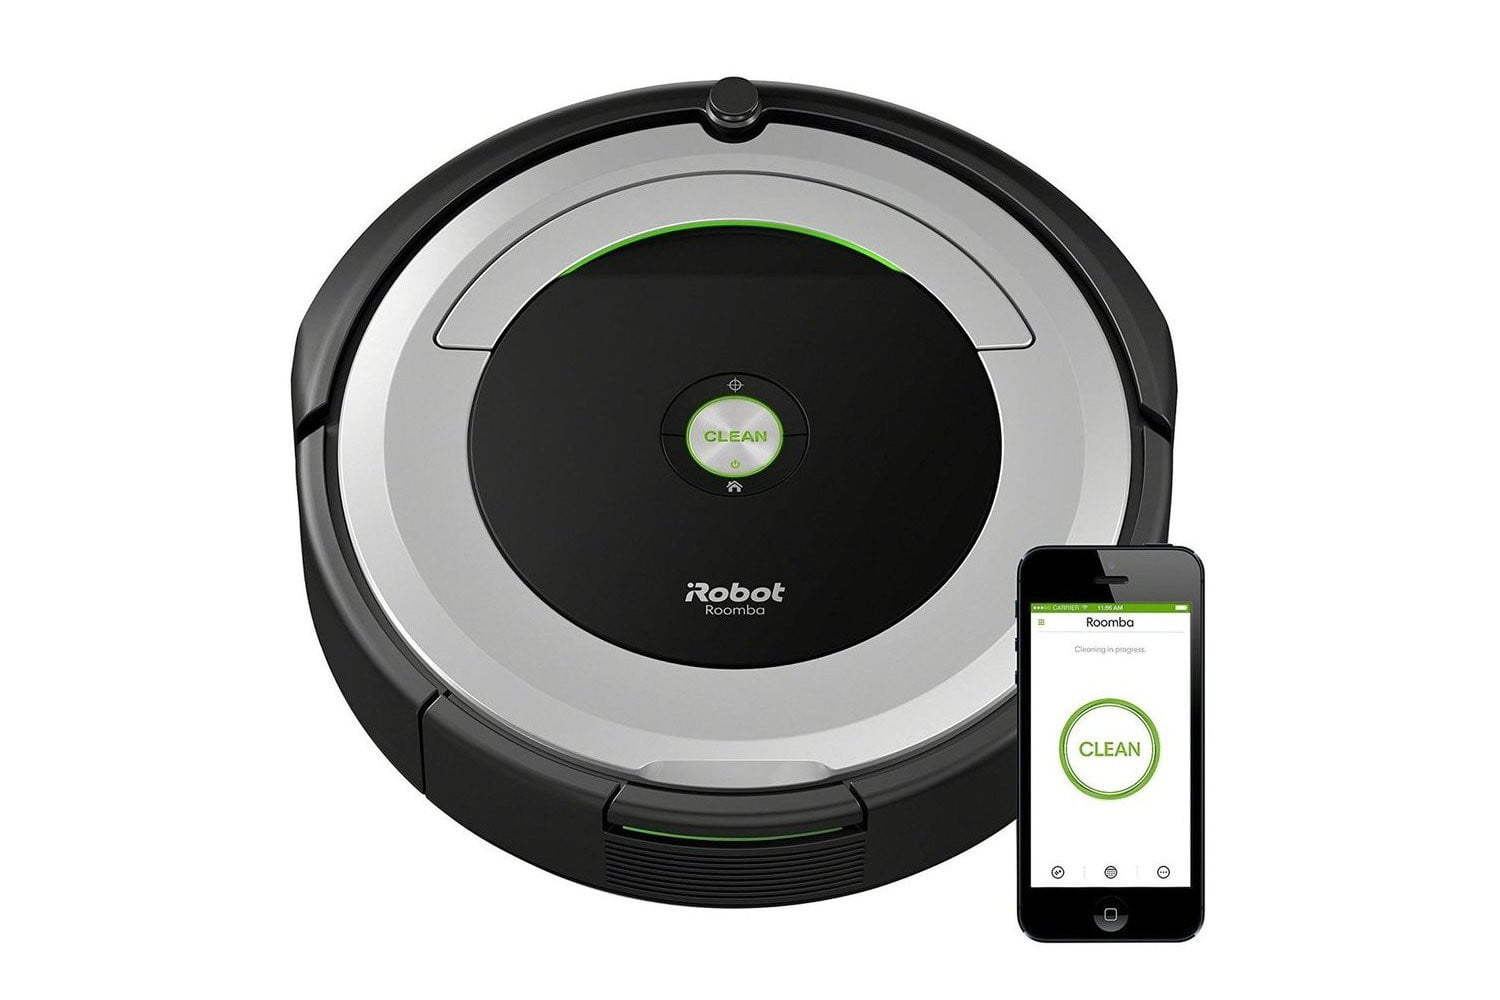 iRobot Roomba 690 Robot Vacuum With Wi-Fi Connectivity irobot roomba deals